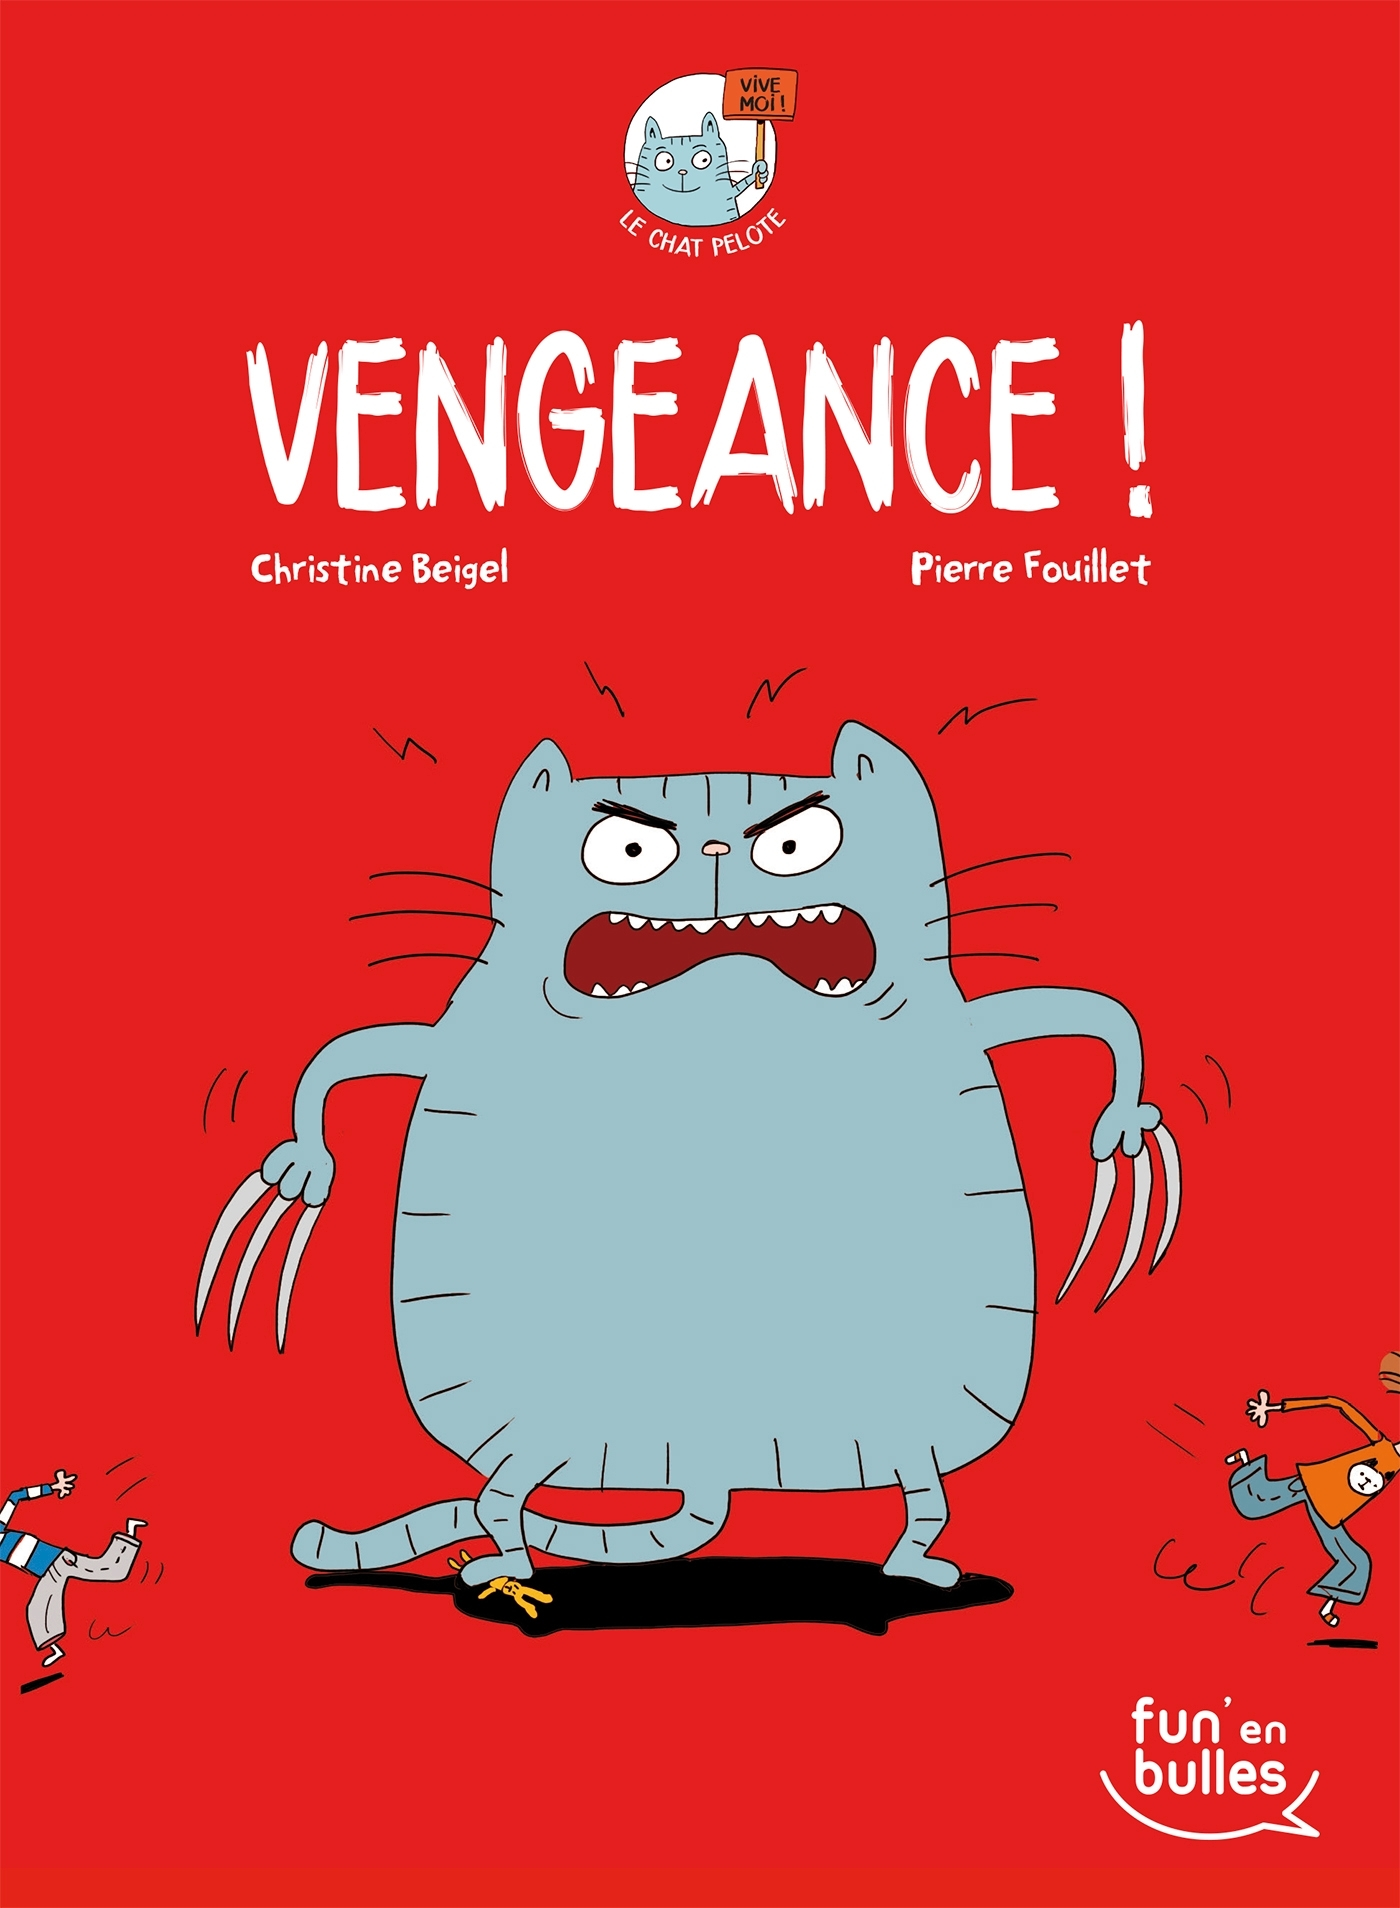 FUN'EN BULLES : LE CHAT PELOTE - VENGEANCE